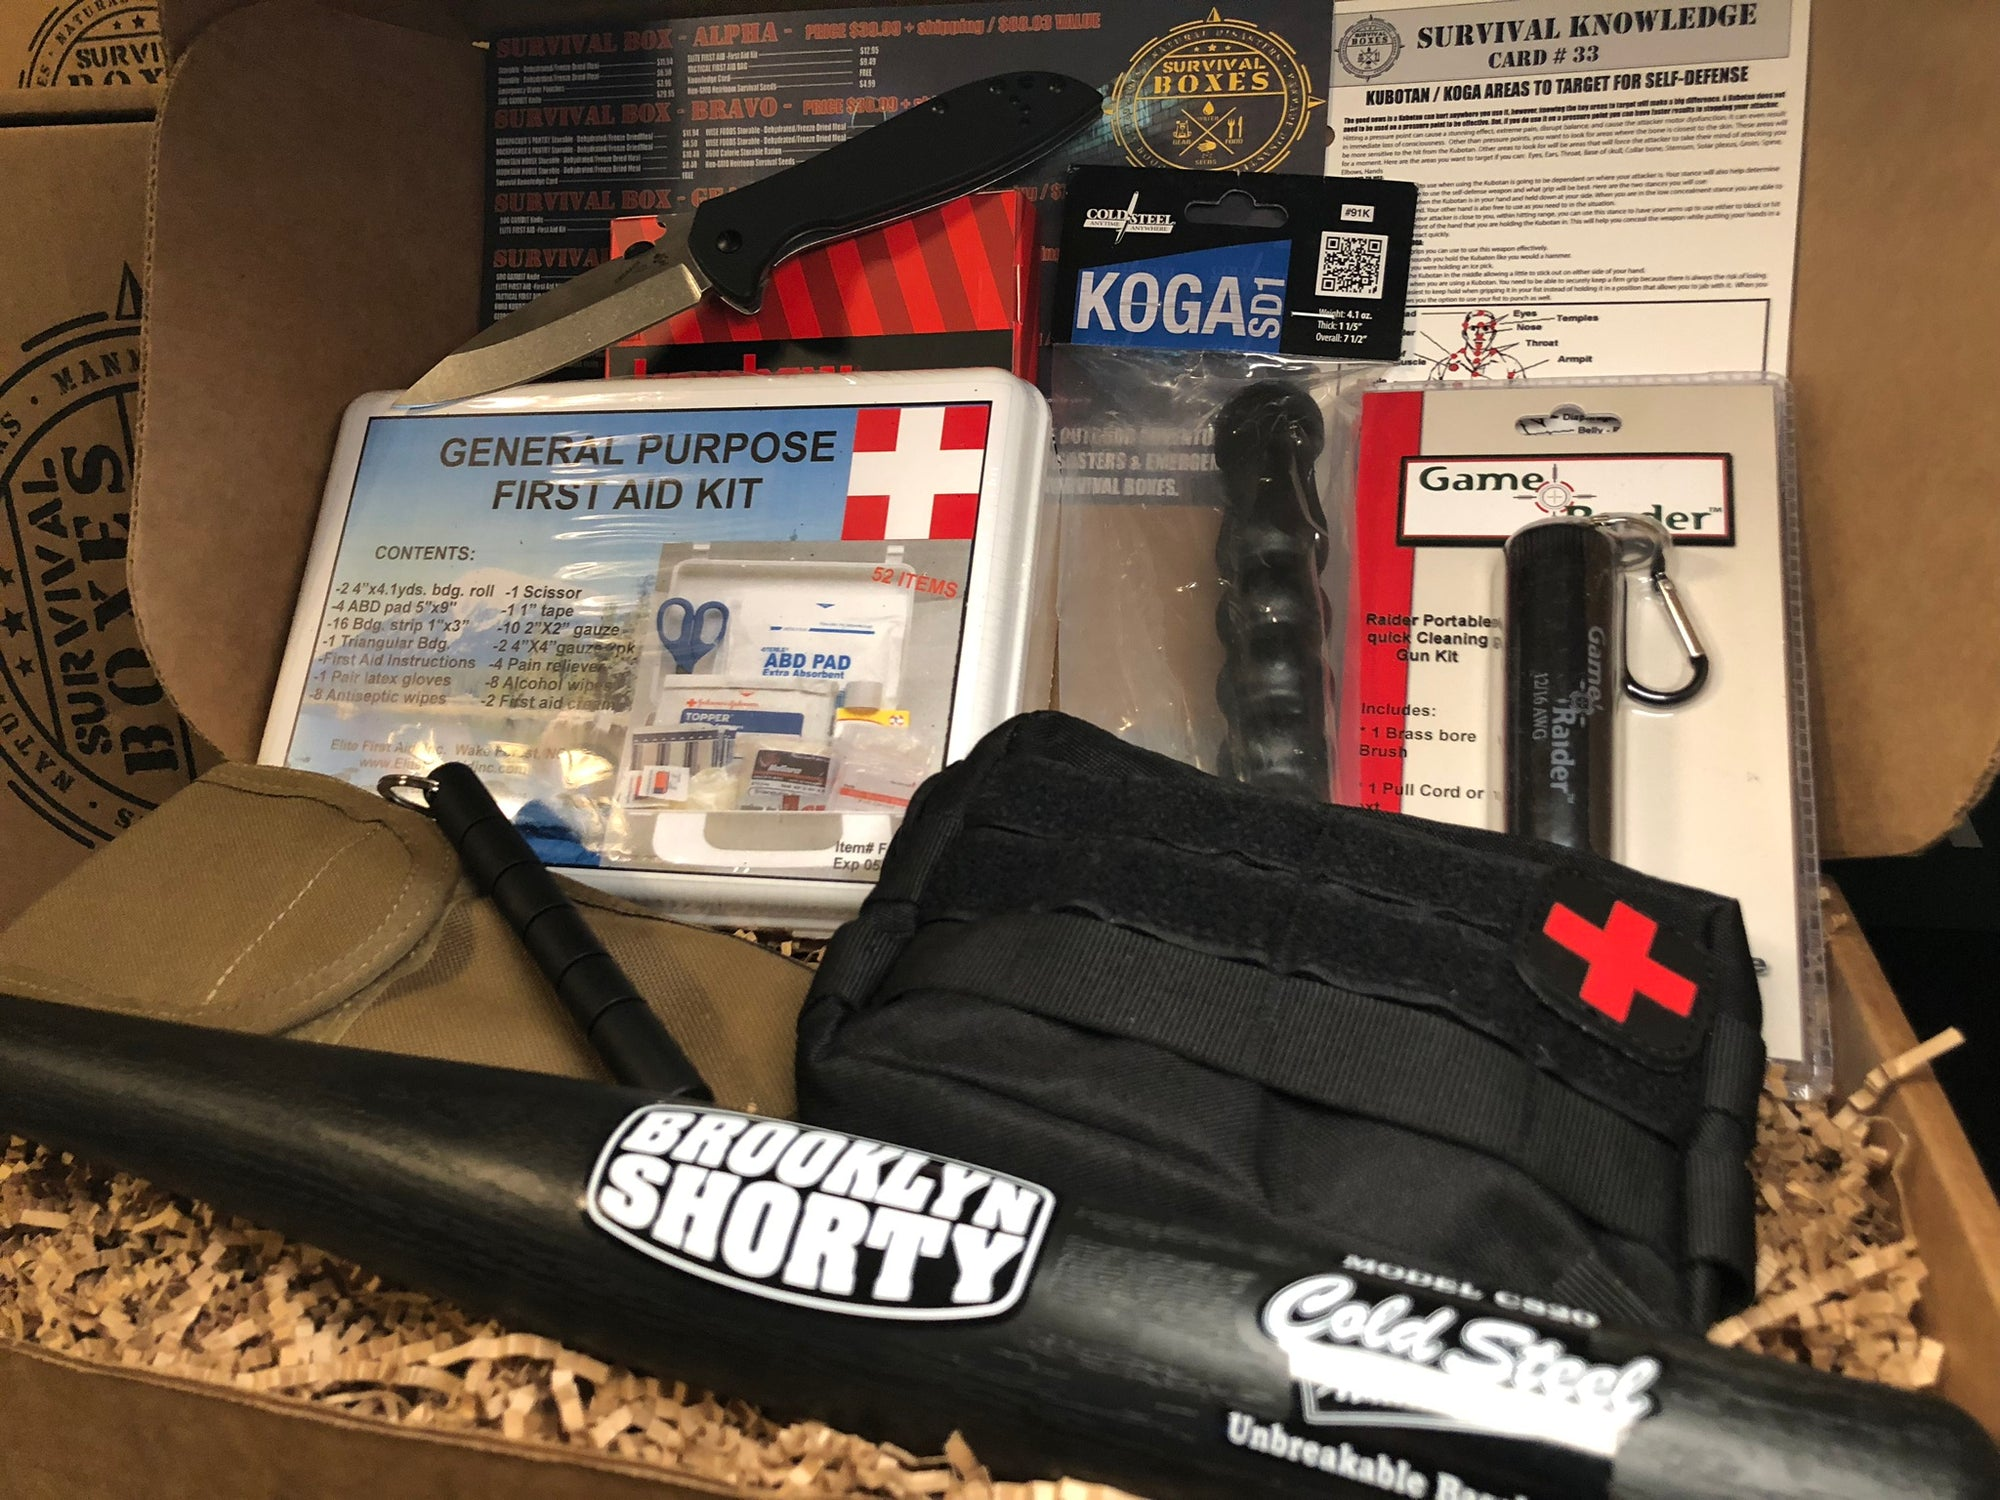 OCTOBER 2018 SURVIVAL BOX - GEAR ONLY XL SELF DEFENSE - FIGHT & FIRST AID